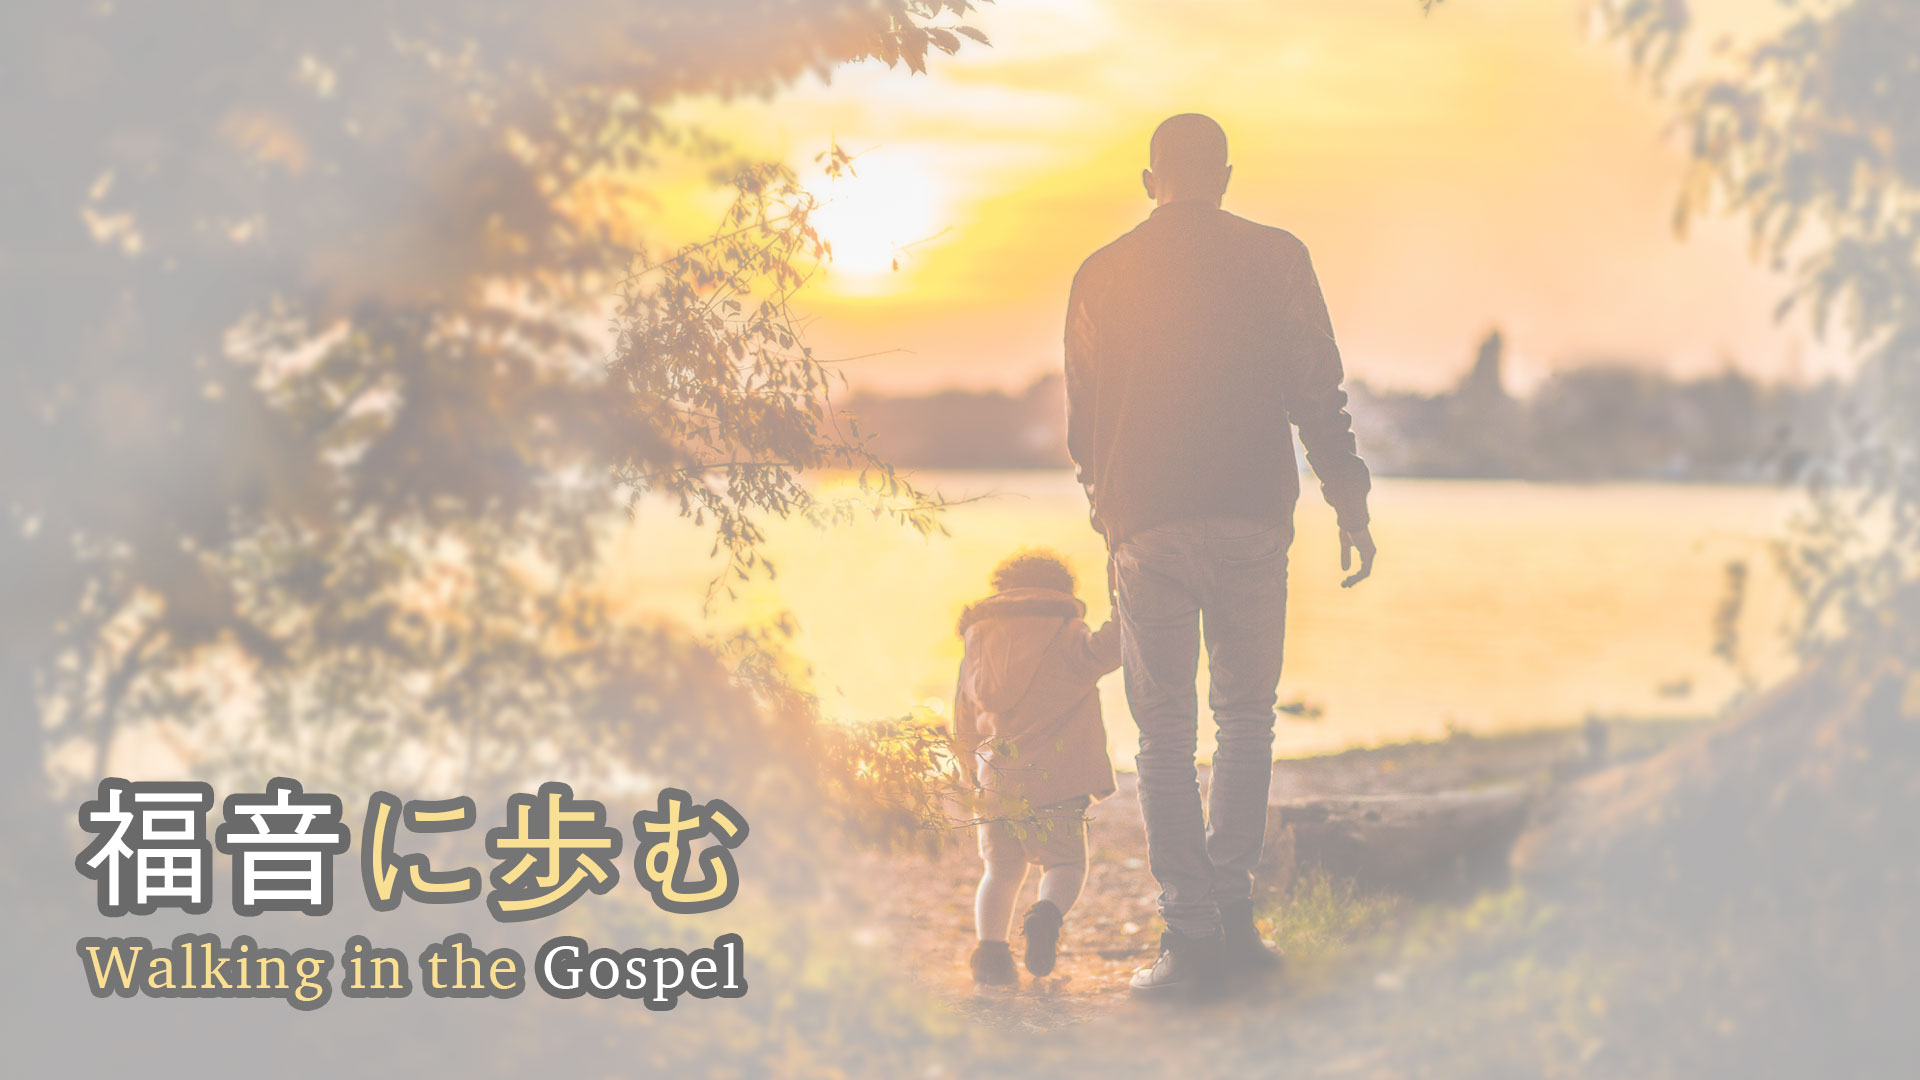 福音に歩むWalking in the Gospel -